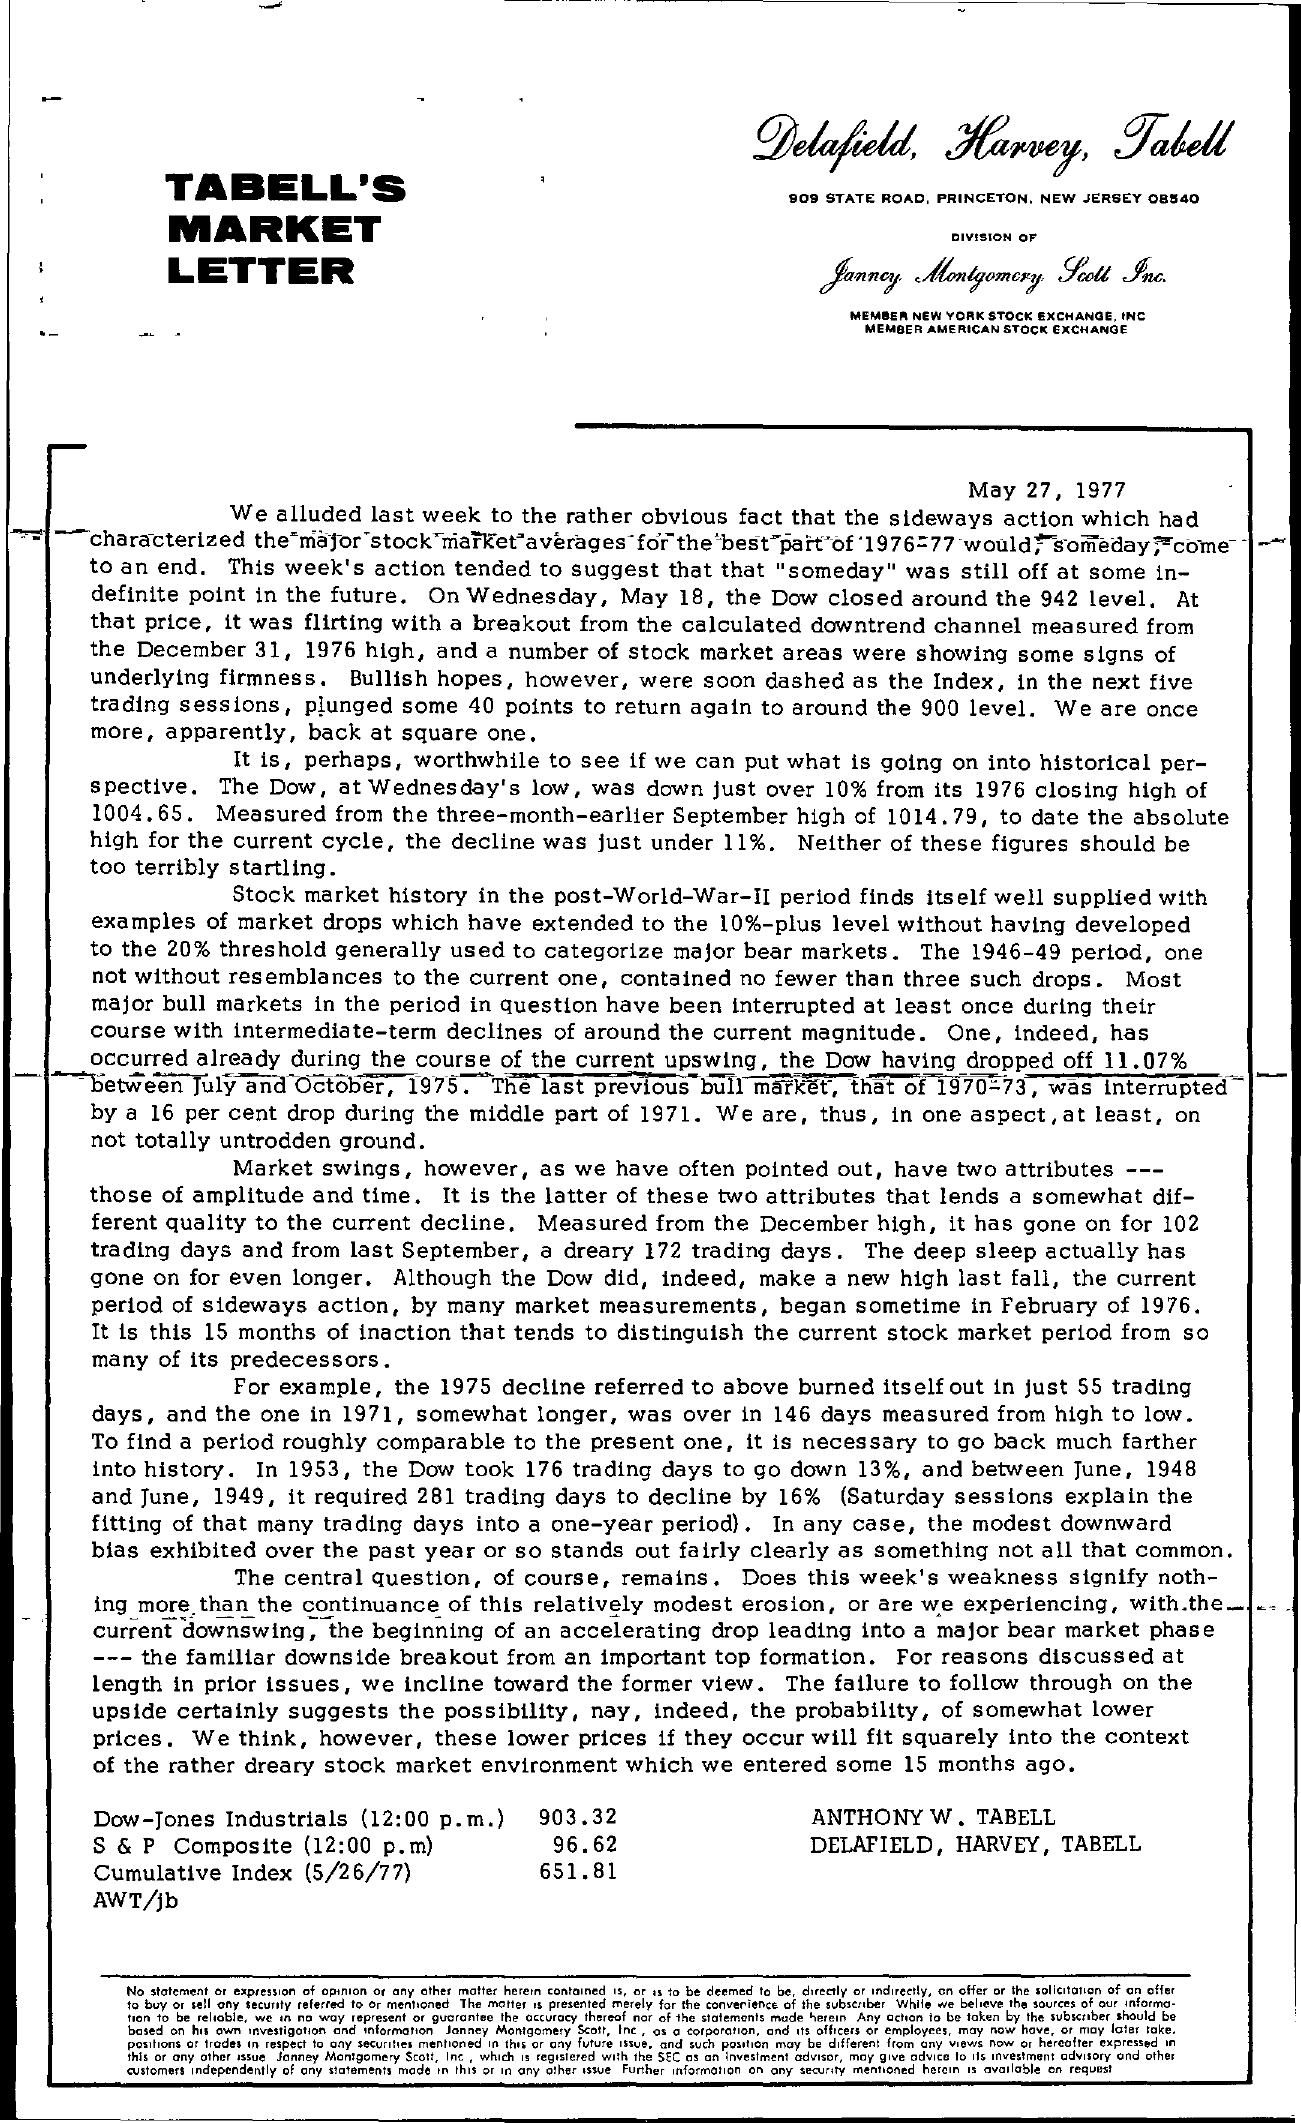 Tabell's Market Letter - May 27, 1977